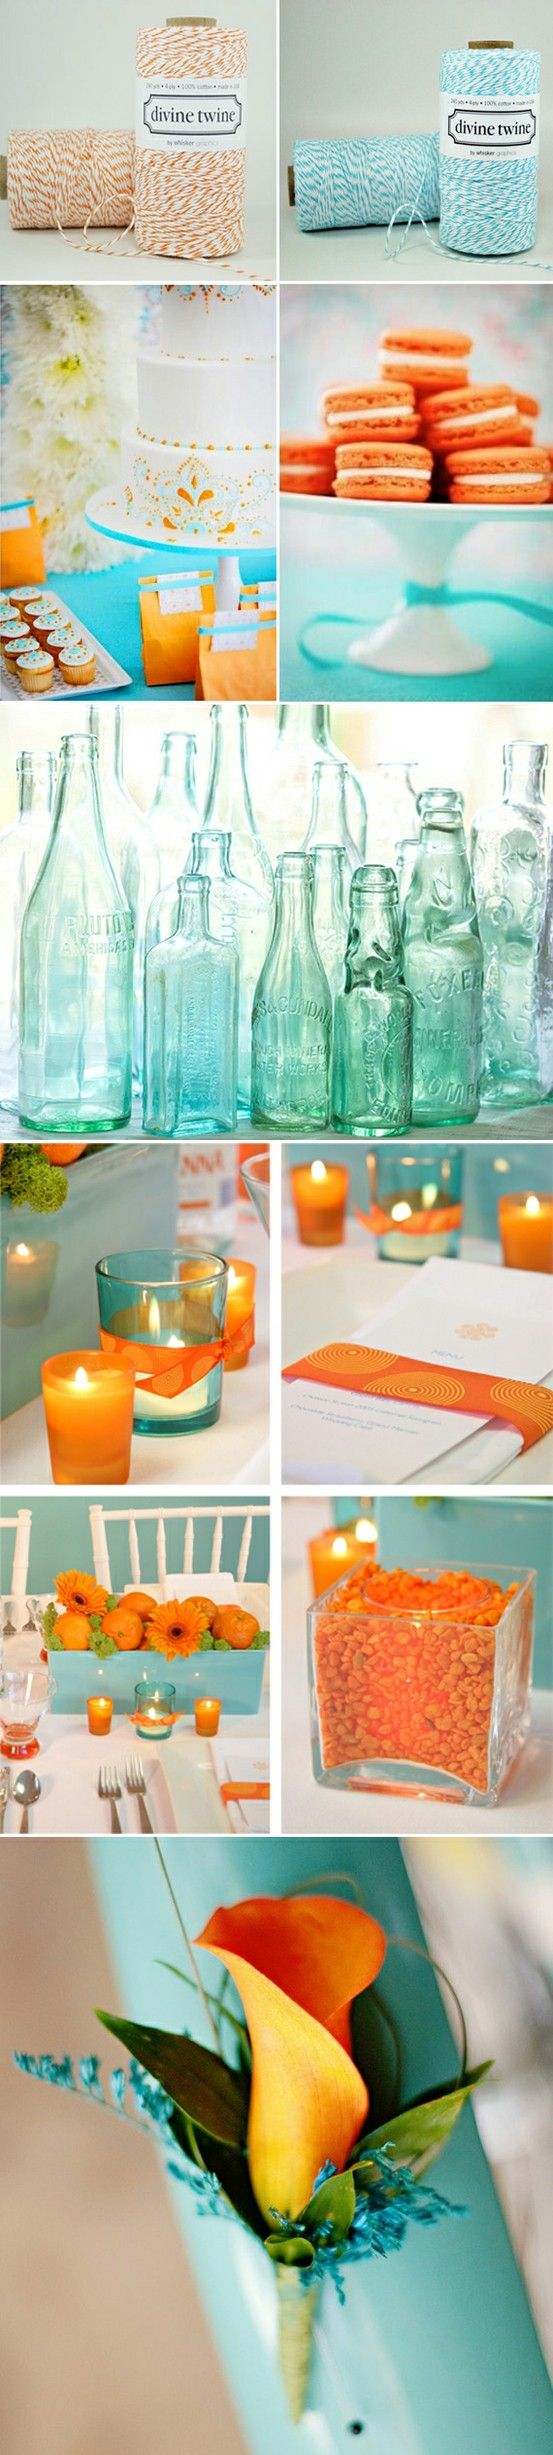 Teal and Orange Wedding Inspiration Board